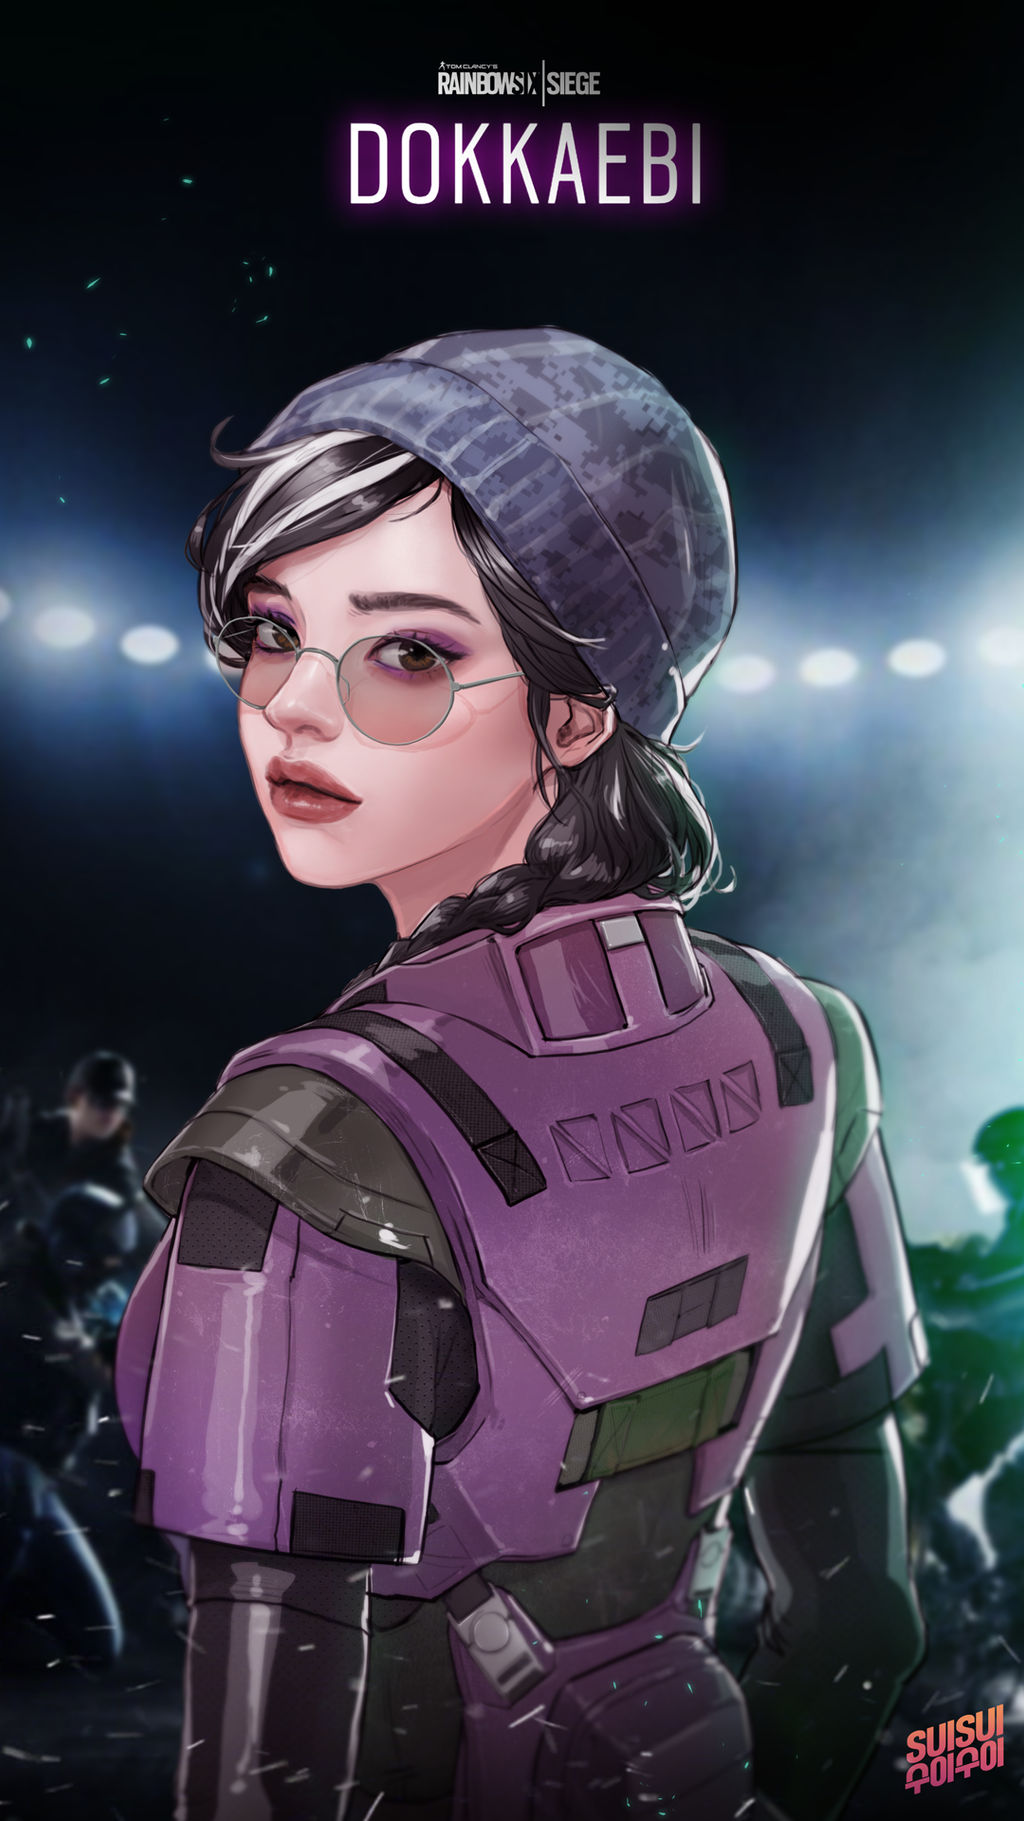 Rainbow Six Siege Dokkaebi 2 By Hey Suisui On Deviantart